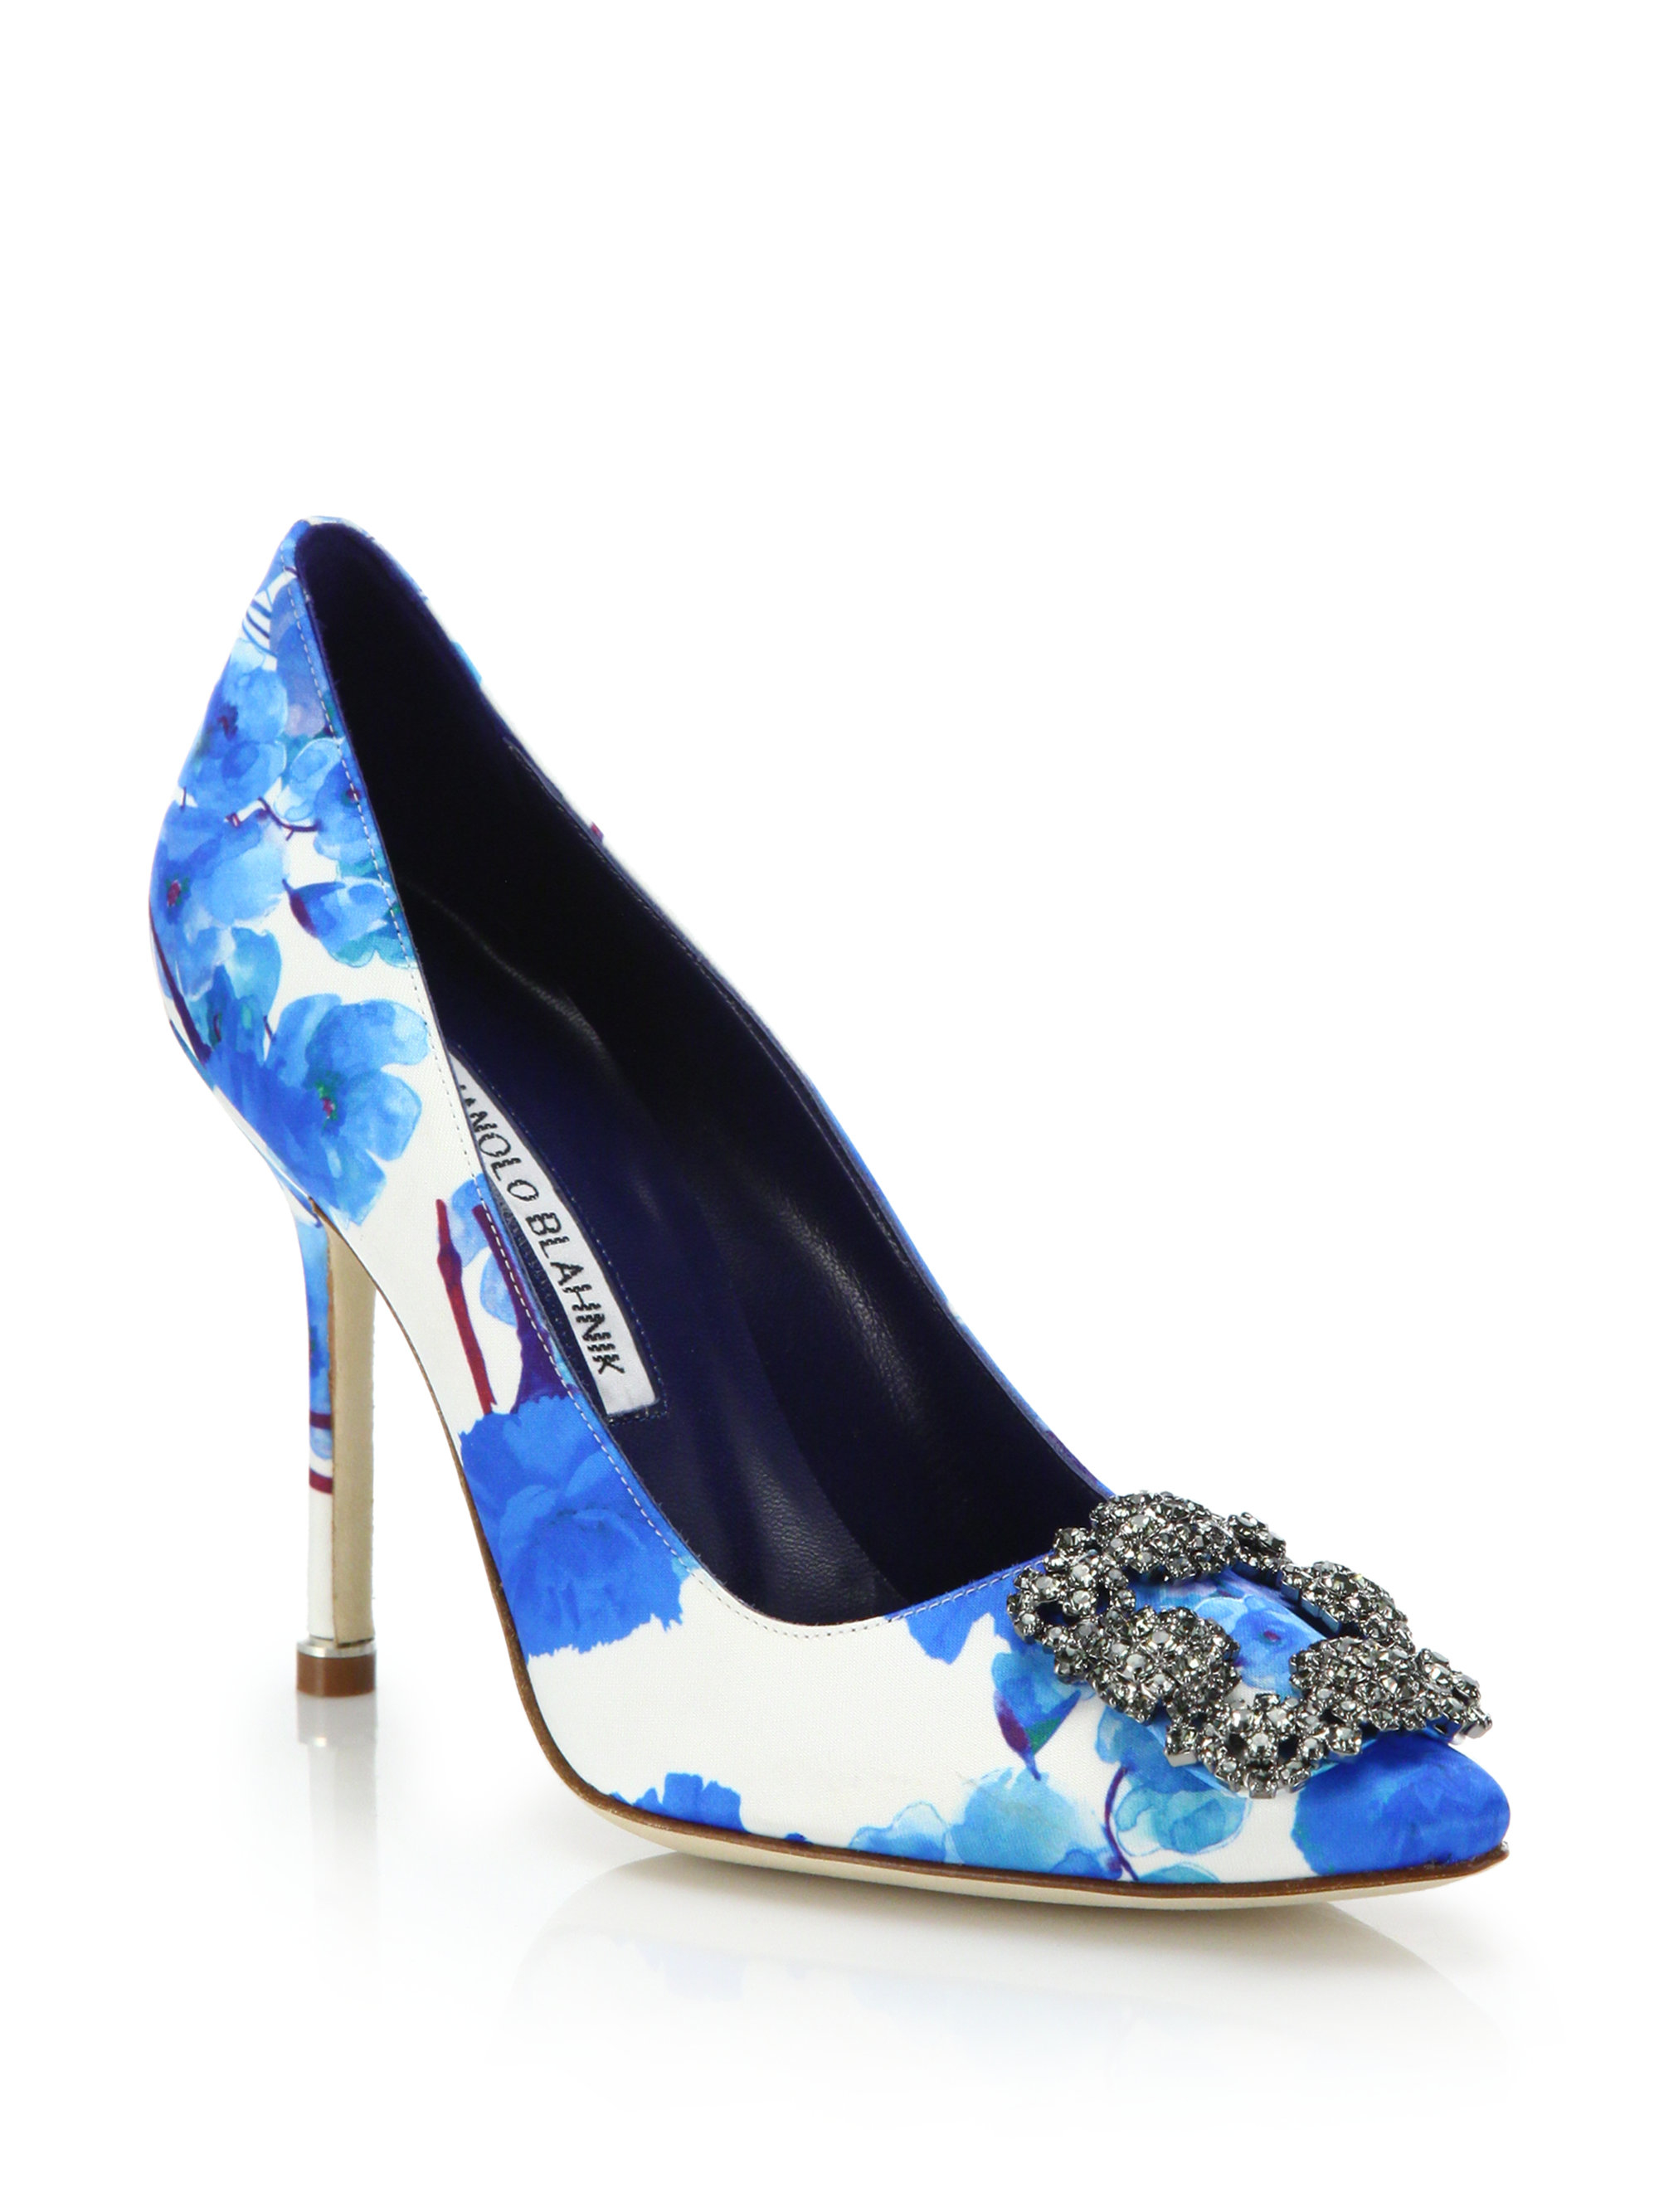 9f3e8a044141 Lyst - Manolo Blahnik Hangisi Floral-print Pumps in Blue